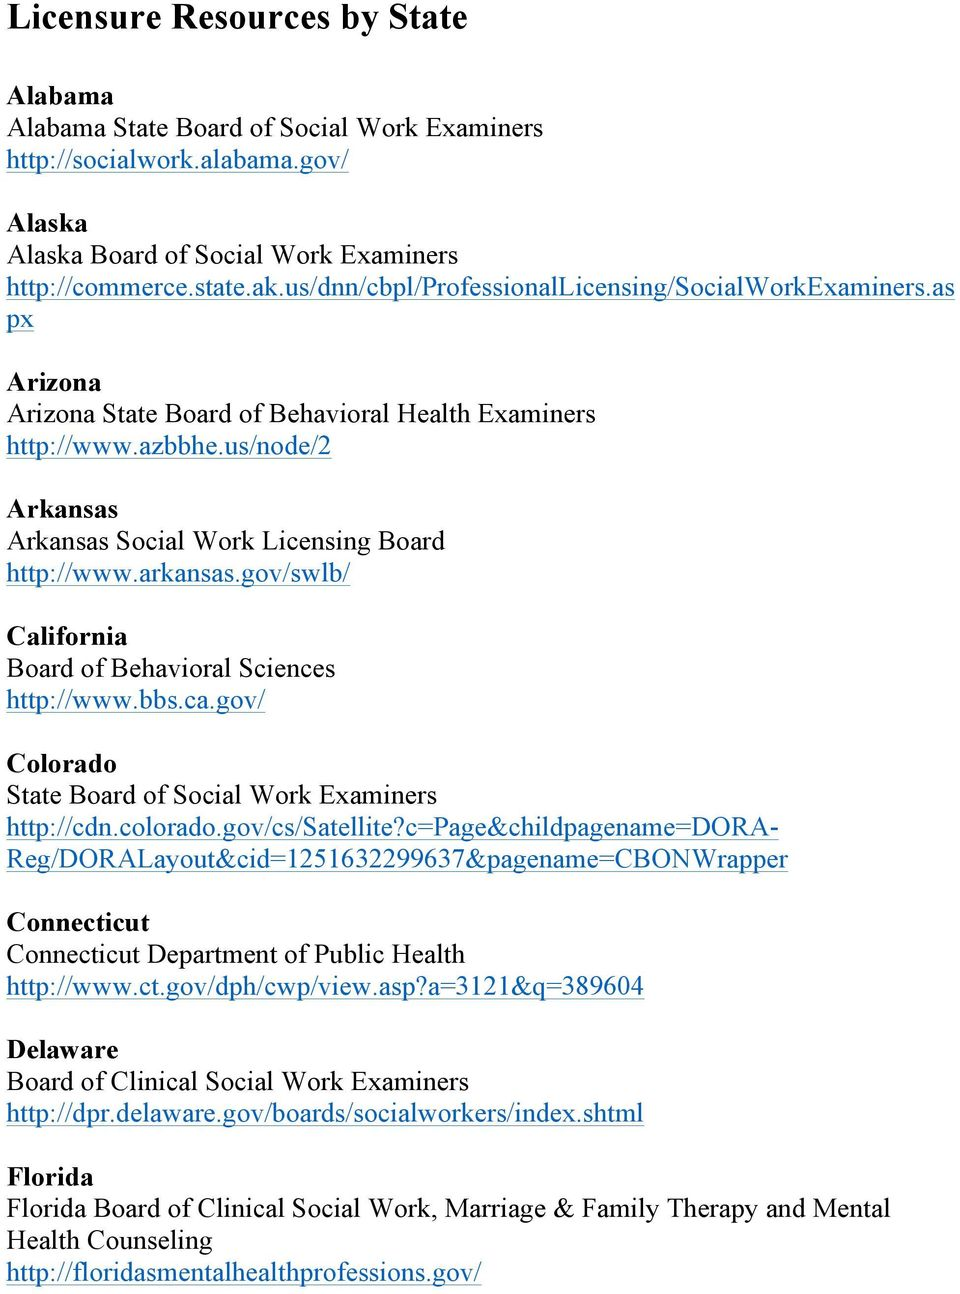 Licensure Resources By State Pdf